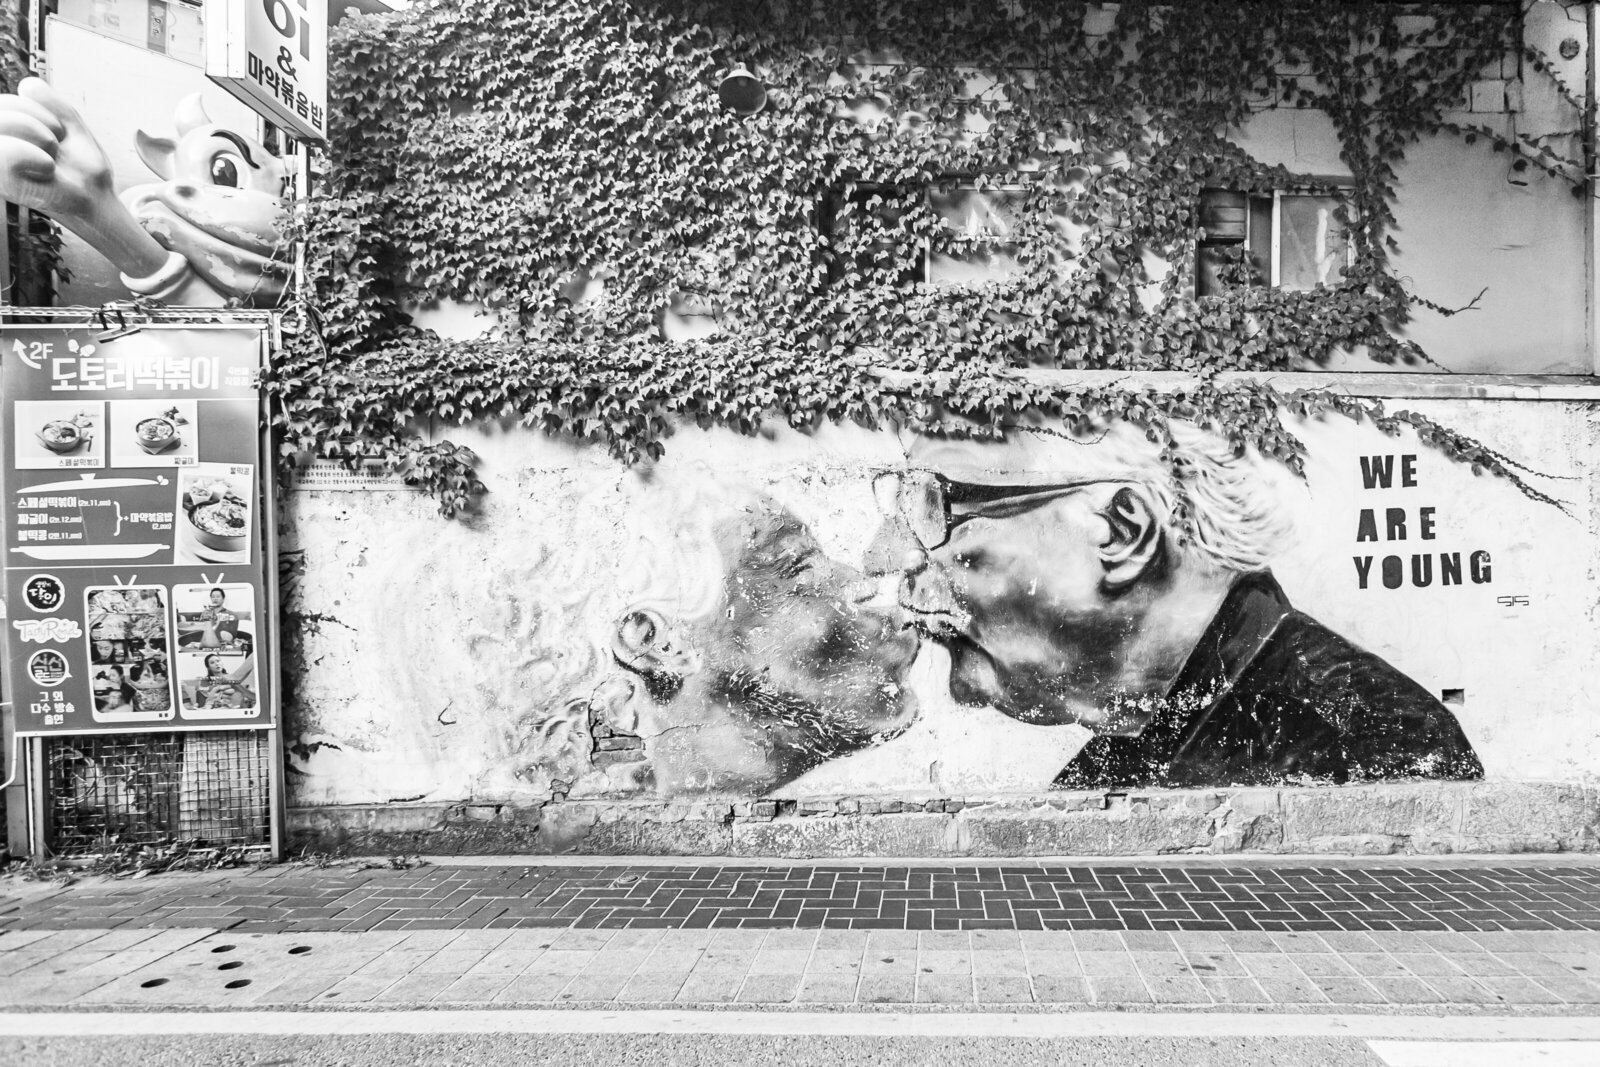 065-KBP-Seoul-South-Korea-Street-Art-black-and-white